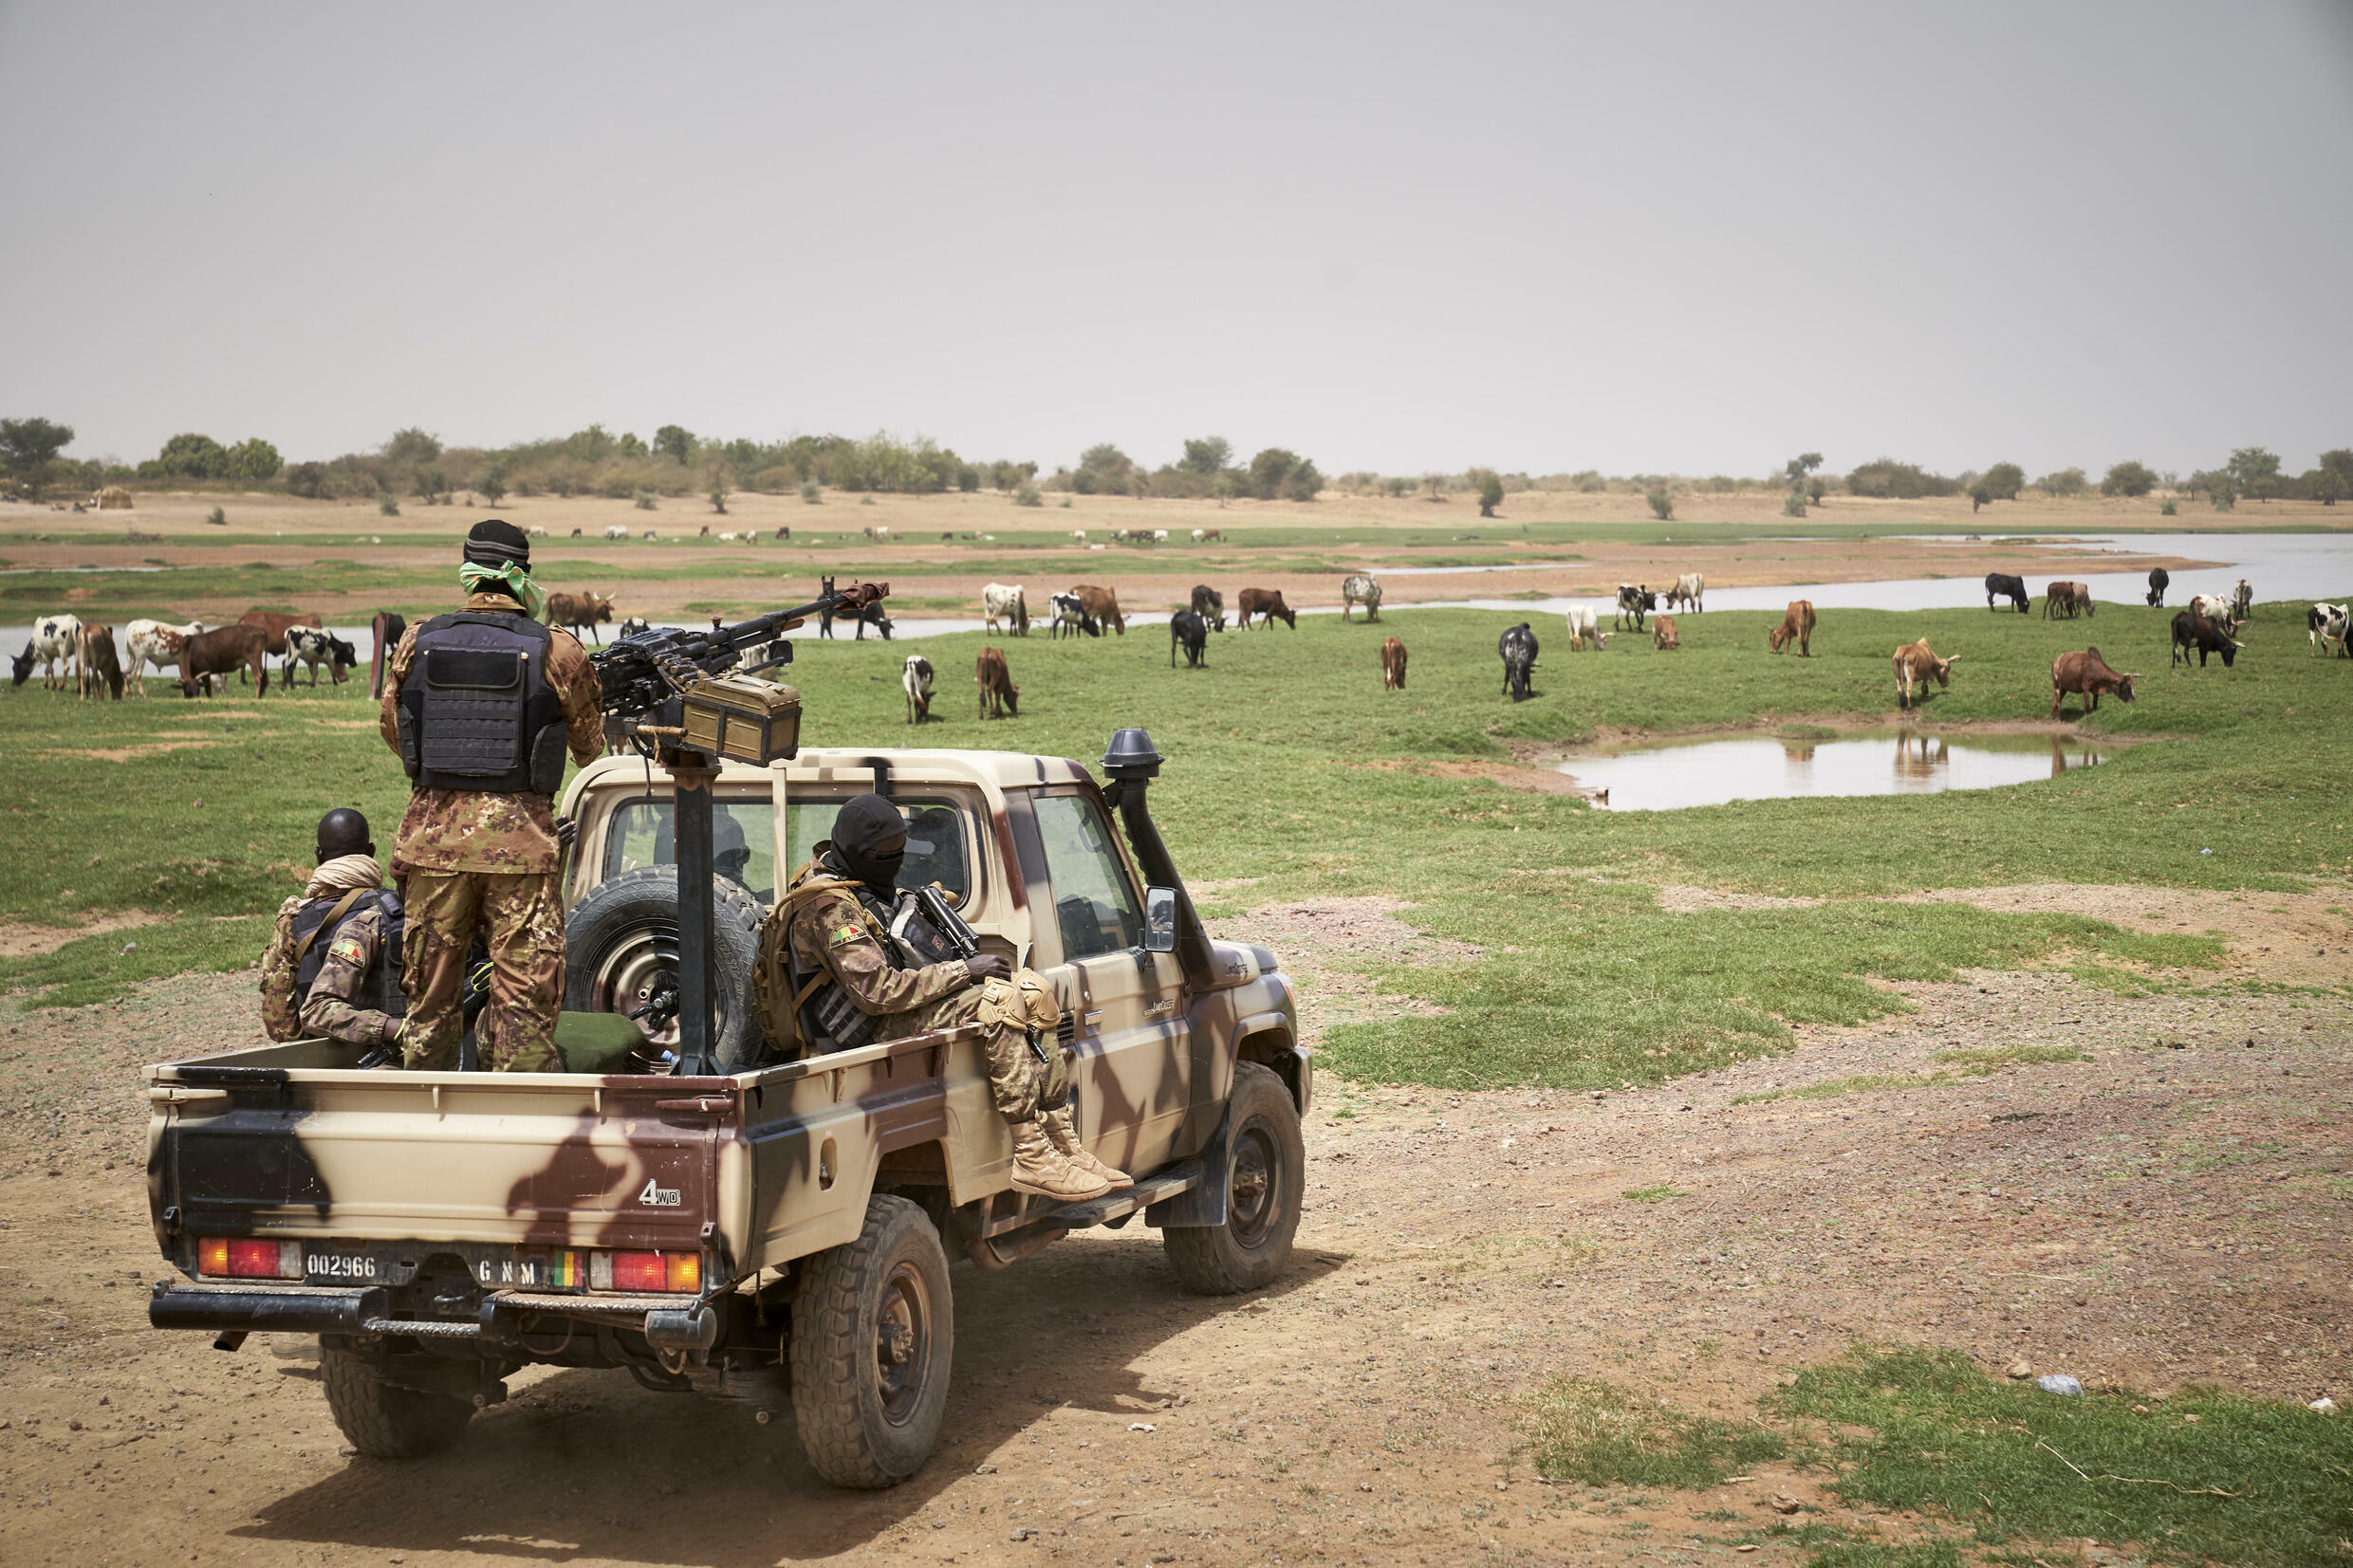 Malian soldiers on patrol. Malihas been struggling to contain an Islamist insurgency that first broke out in the north of the country in 2012 before spreading to the centre and neighbouring Burkina Faso and Niger